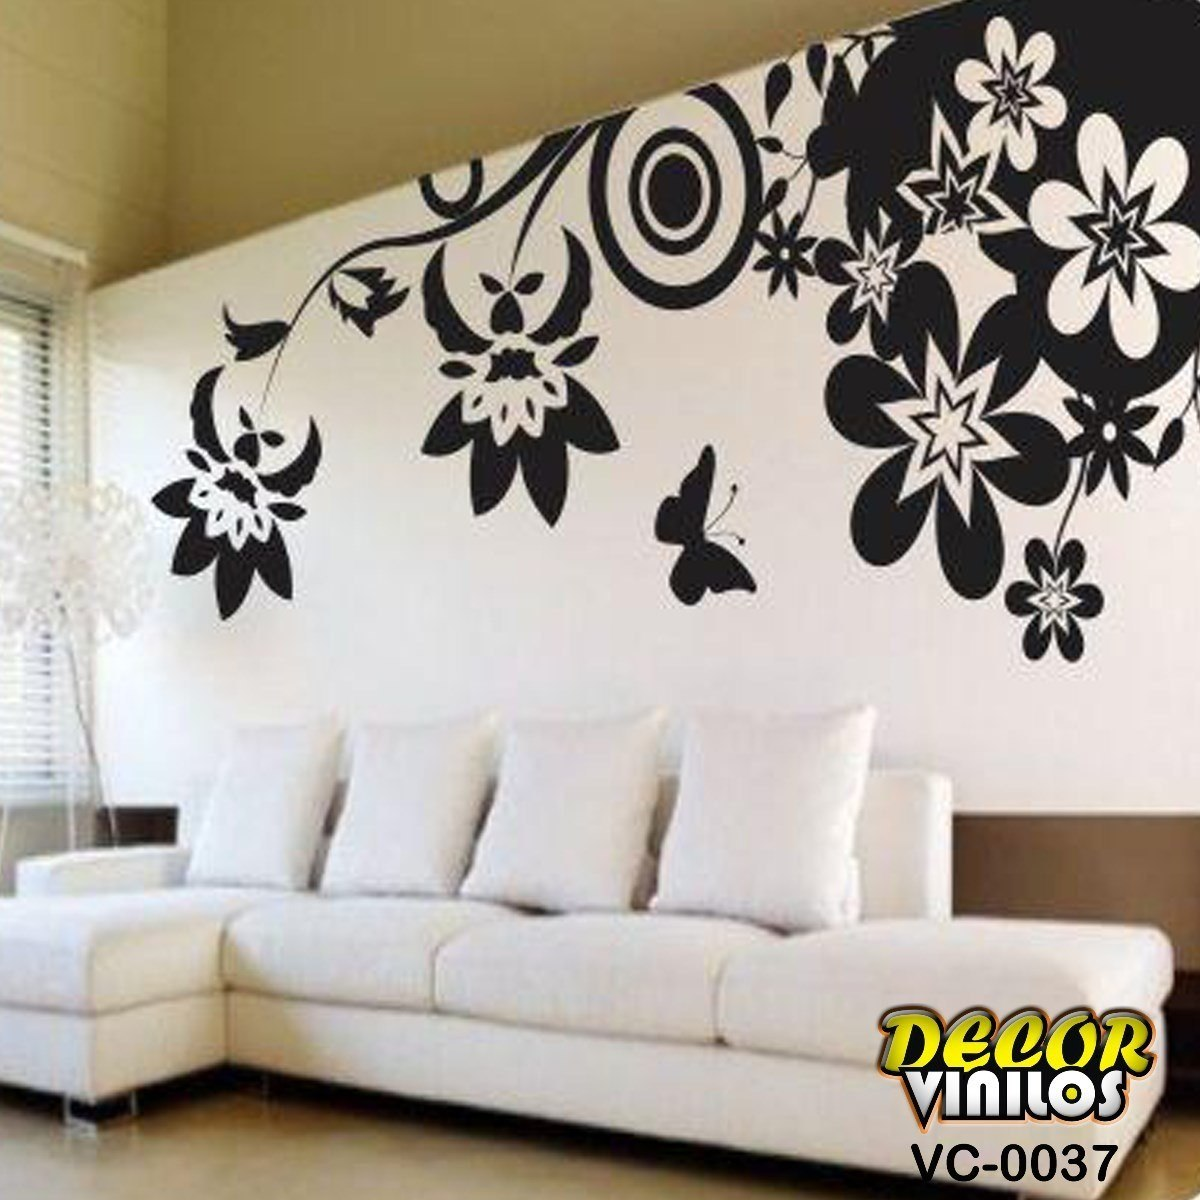 Vinilos decorativos pared vinilos pared vinilos para - Decorativos para paredes ...